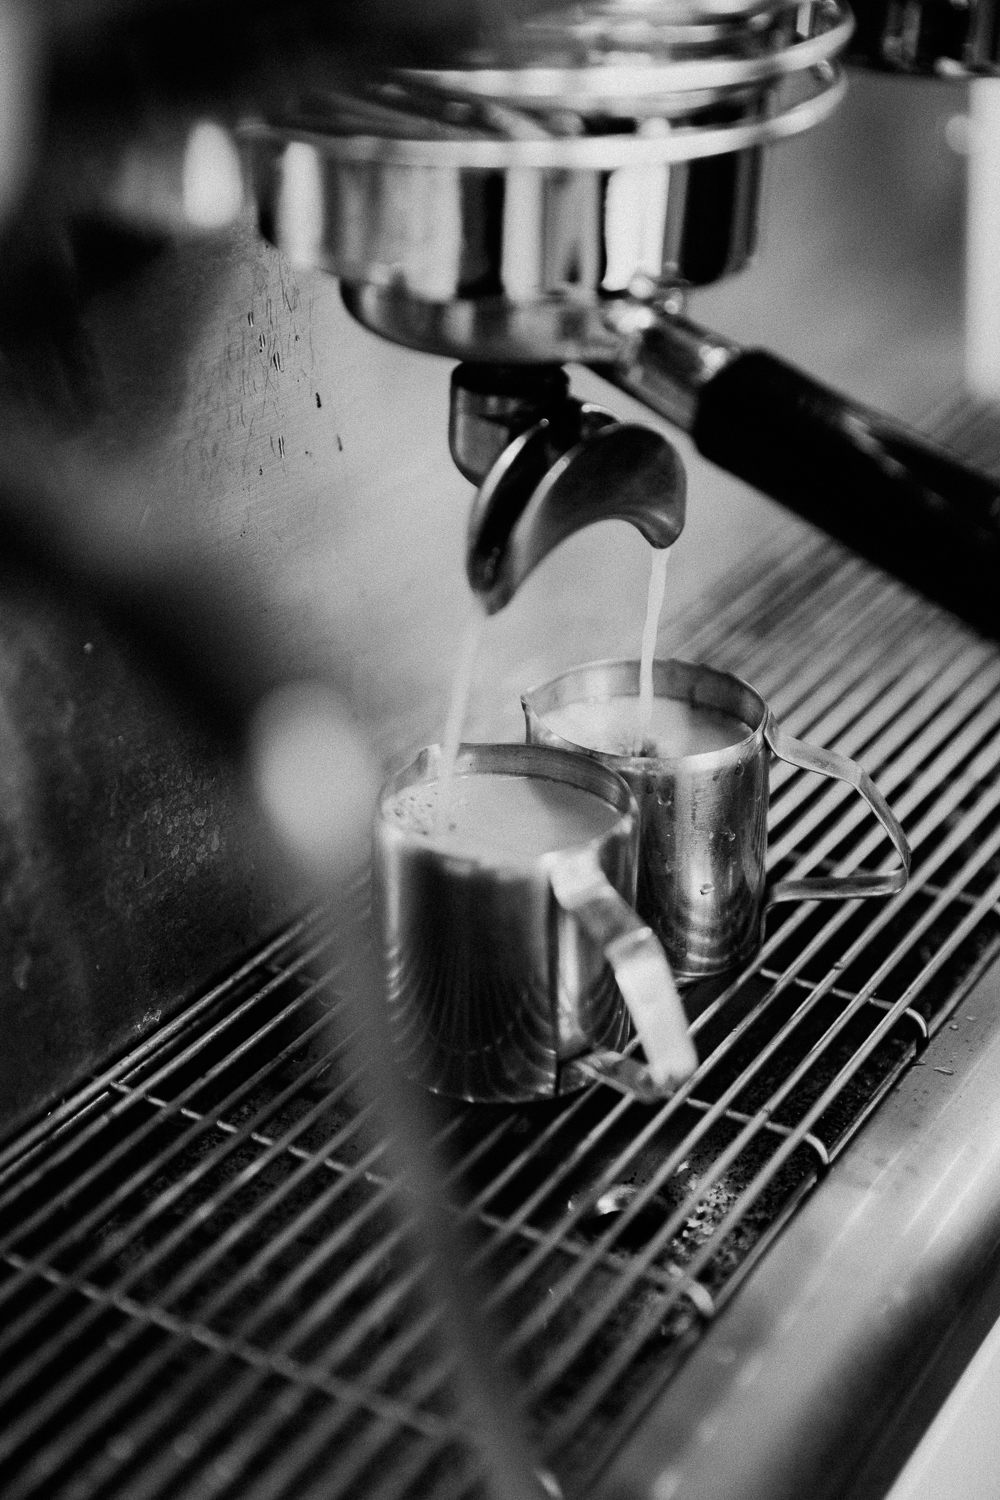 Heilandt Kaffee. Paul Rossaint - Photography/Camera